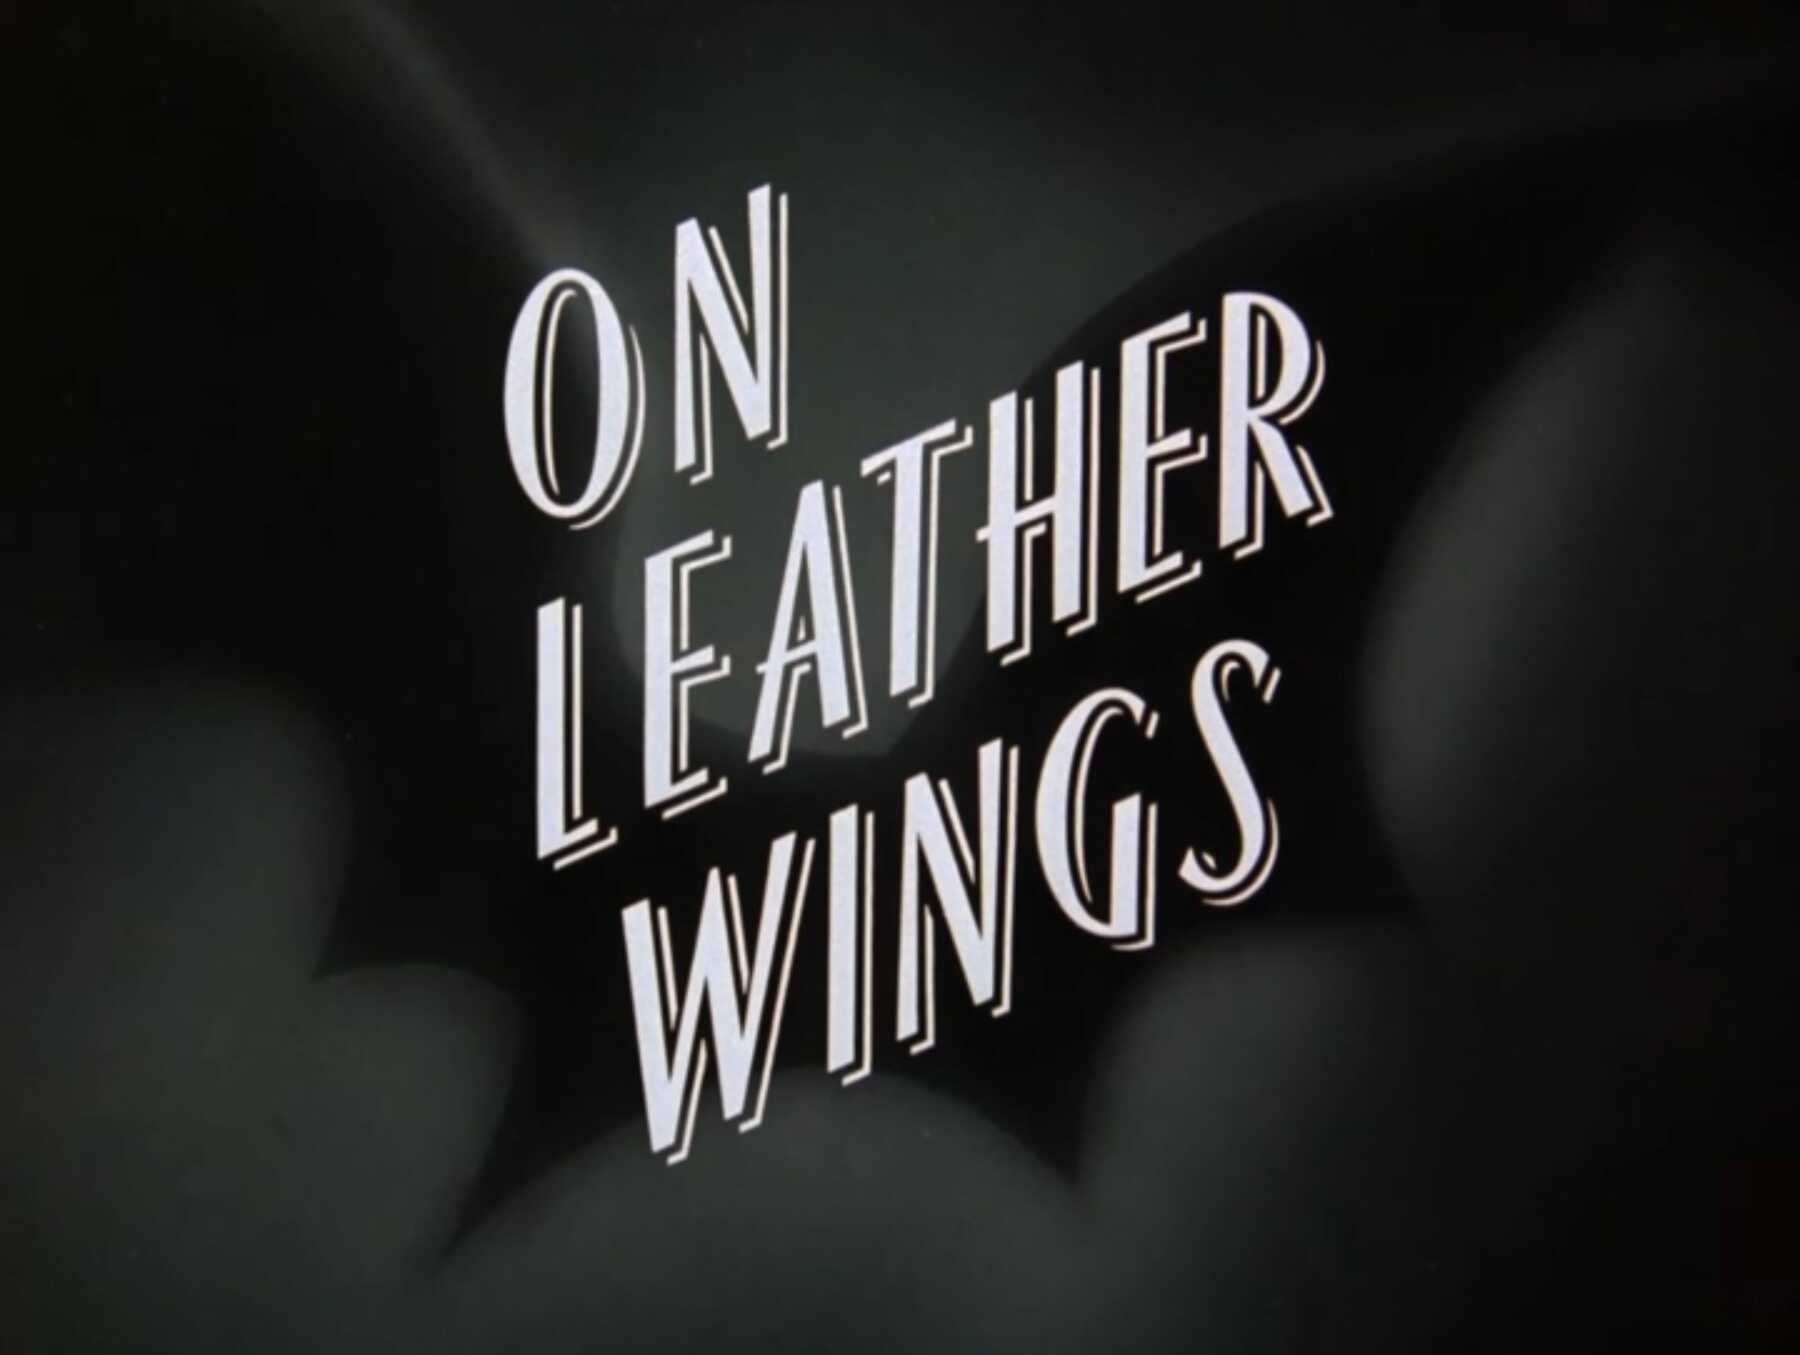 The title card for On Leather Wings. It shows bat wings in silhouette behind stylized title text for the episode.